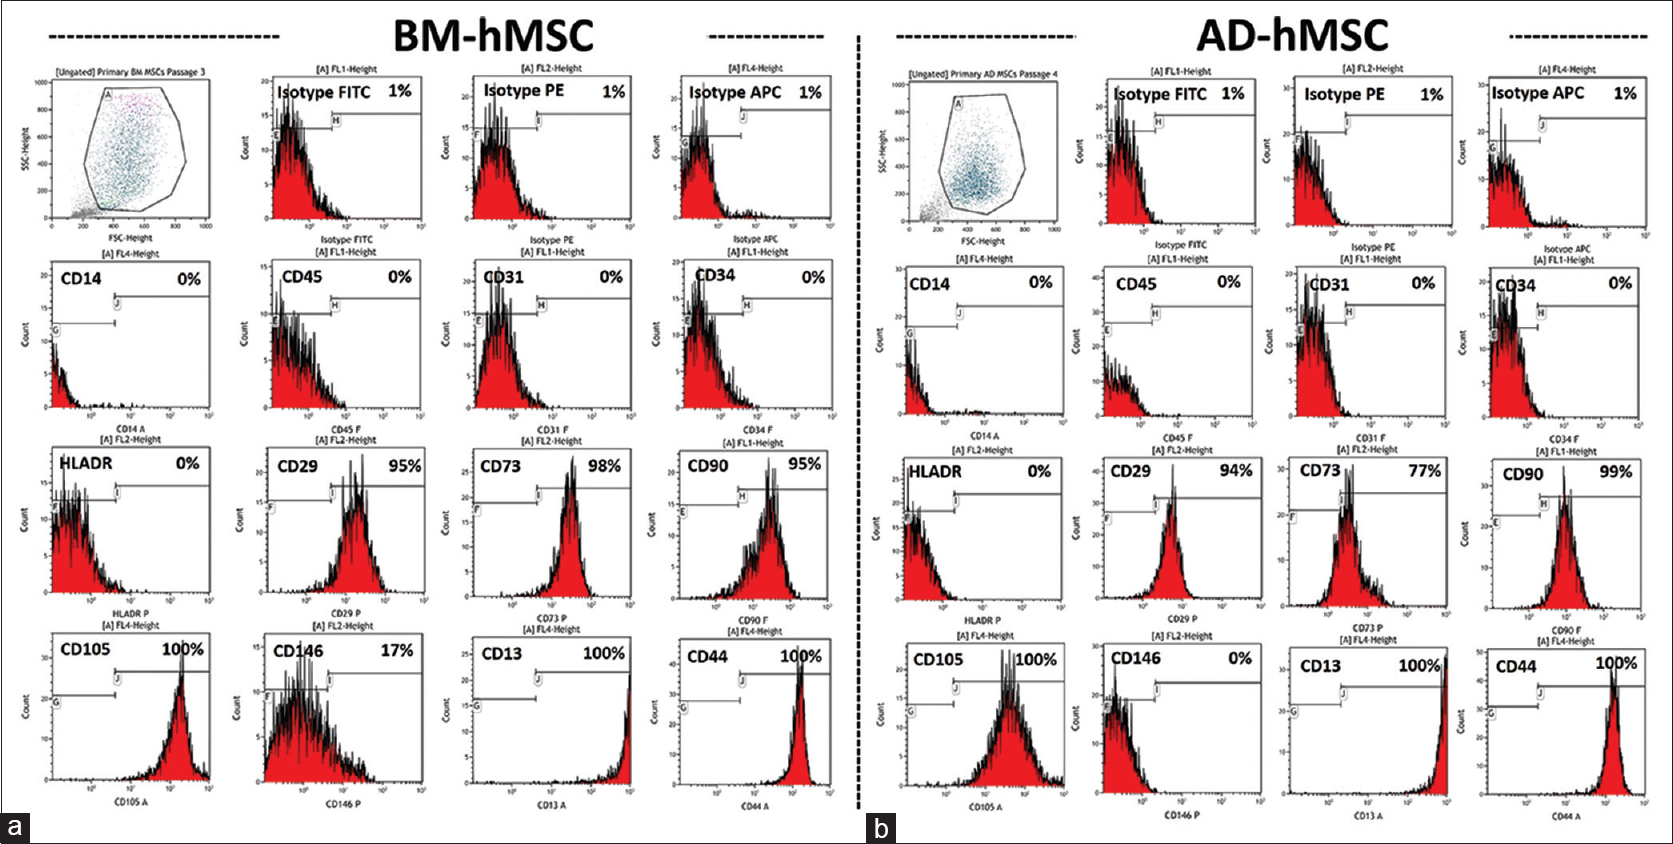 Figure 1: Flow cytometry analysis shows the phenotypic resemblance of BM-MSC and AD-MSC. Primary BM-MSC (a) and AD-MSC (b) were collected and were stained for the indicated surface markers and were analyzed by flow cytometry. The percentage of positive population is indicated on each plot. BM-MSC: Bone marrow-derived human stromal stem cell, AD-MSC: Adipose-derived human stromal stem cell